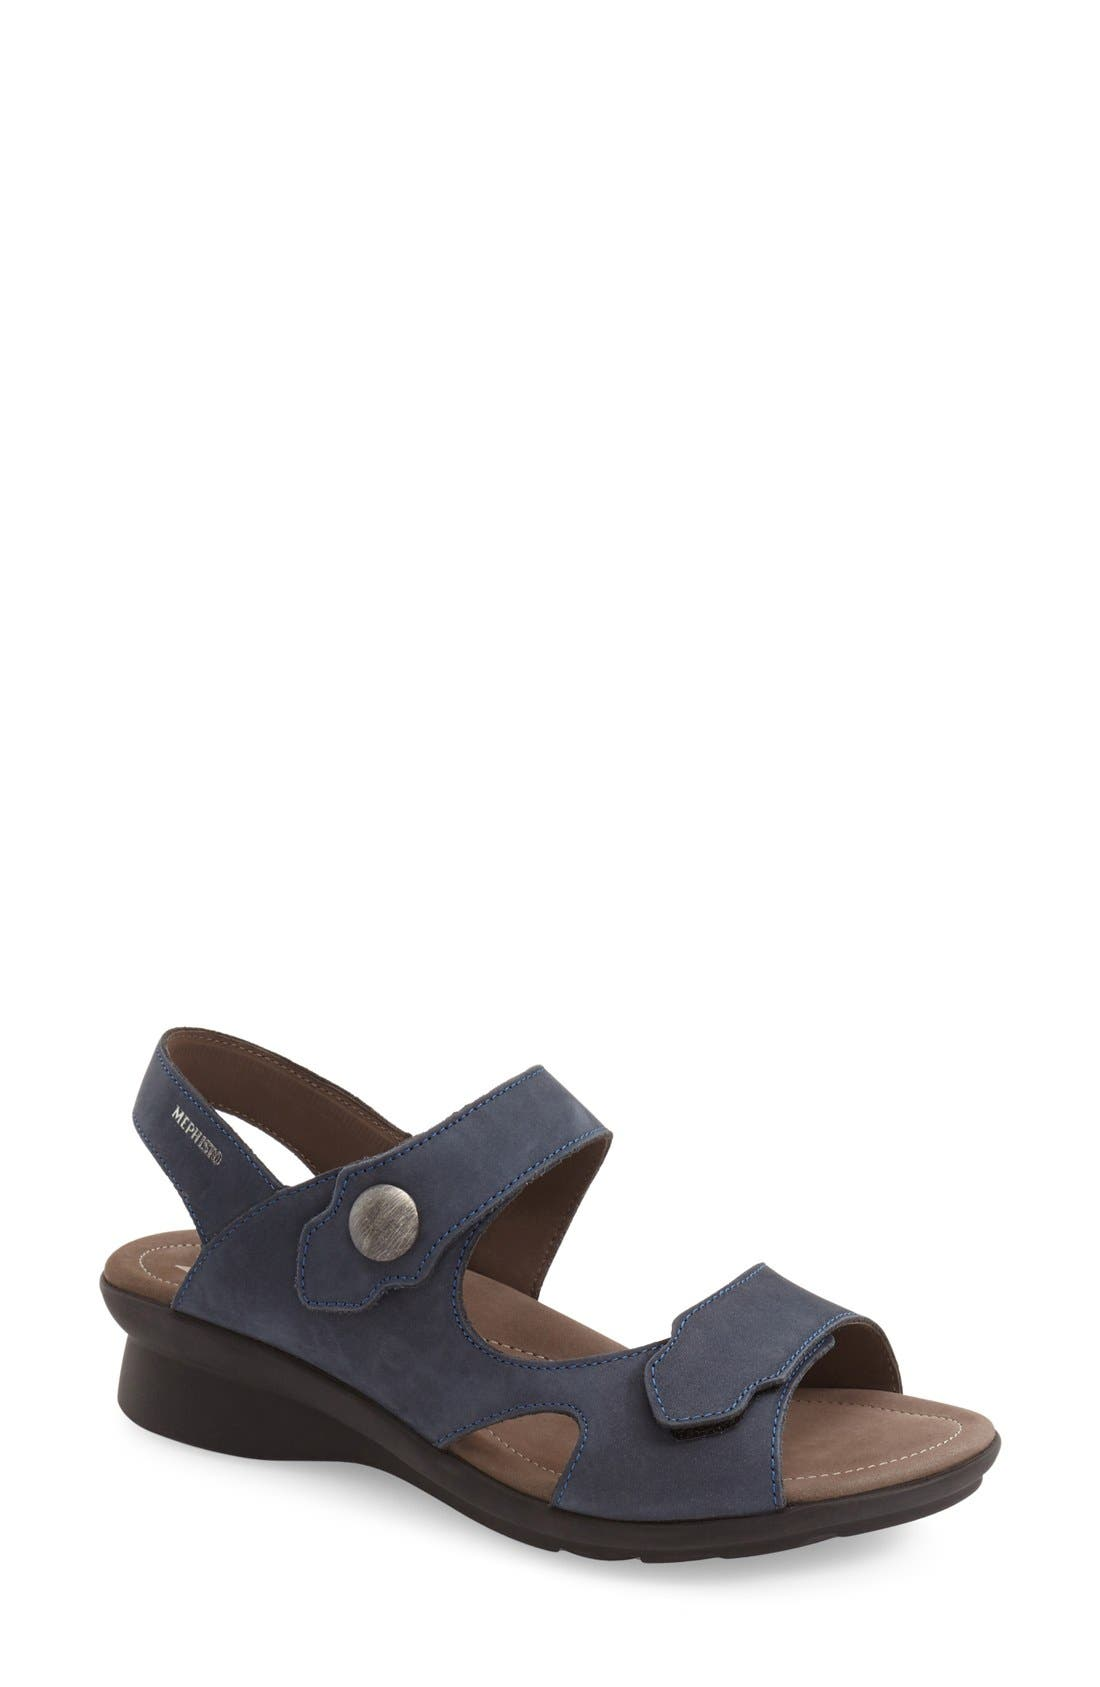 'Prudy' Leather Sandal,                         Main,                         color, Navy Nubuck Leather